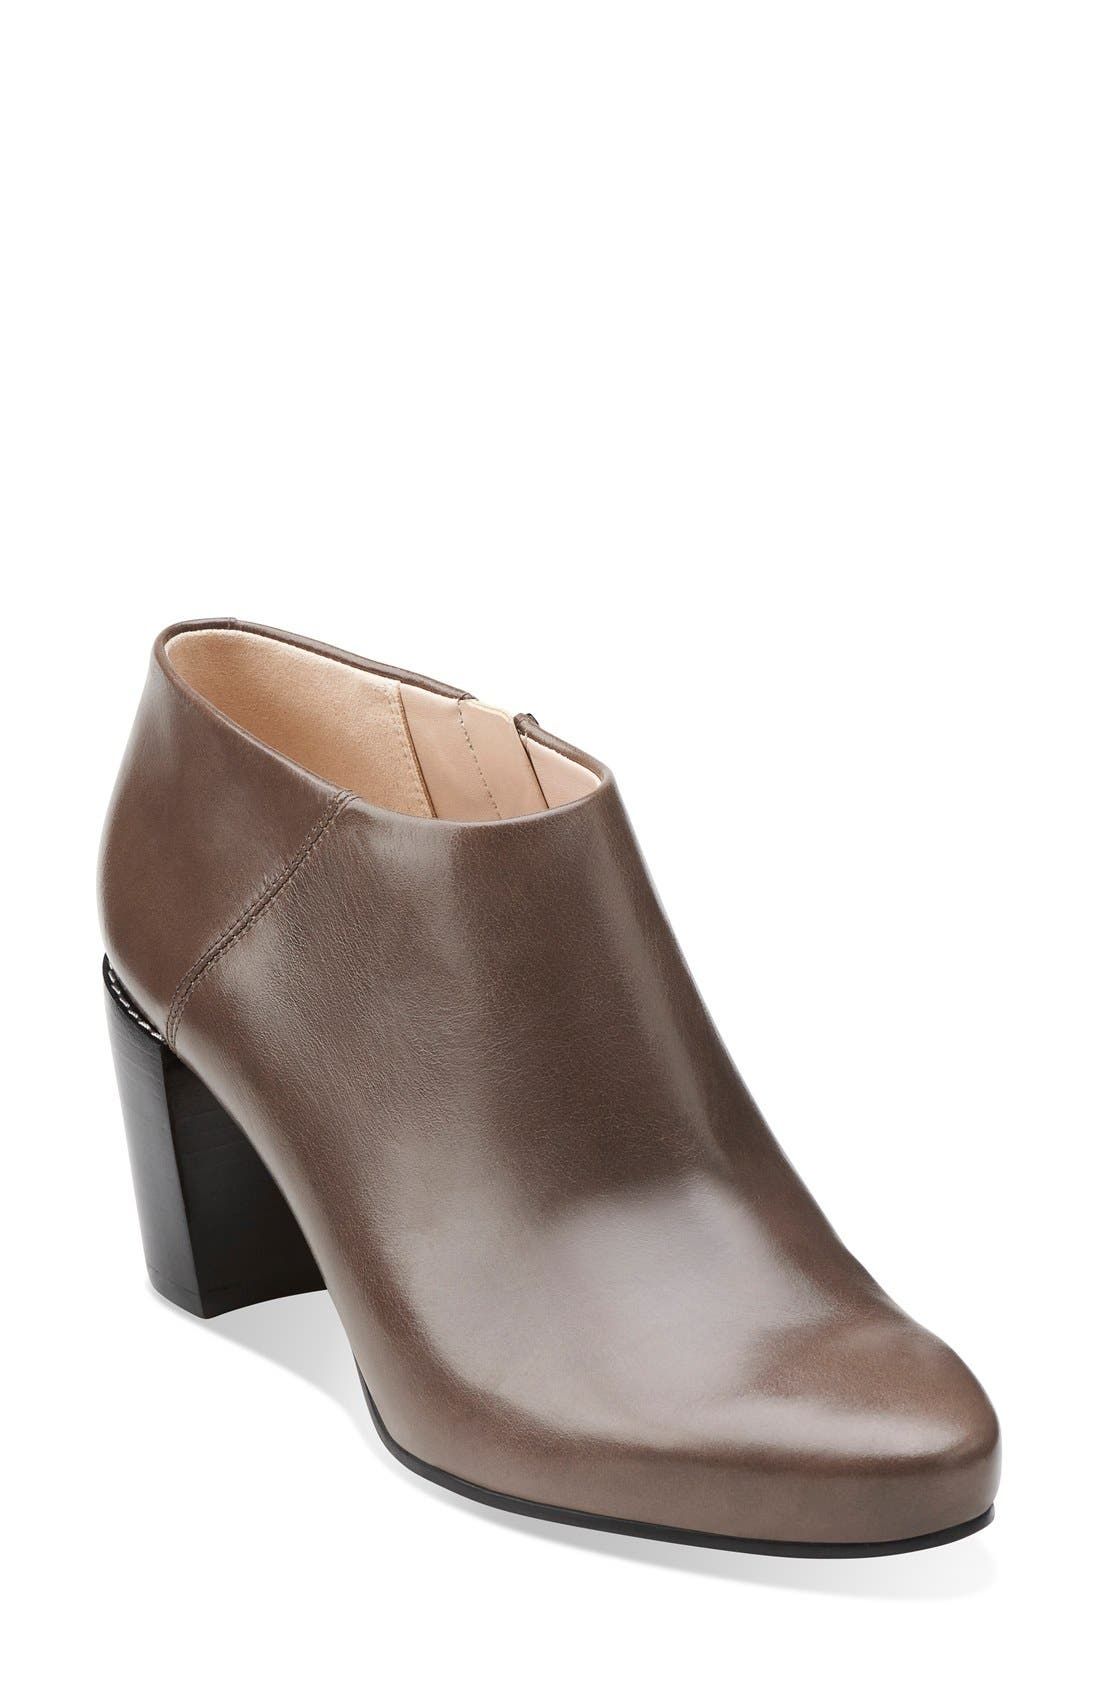 Alternate Image 1 Selected - Clarks® Narrative 'Cleaves Vibe' Bootie (Women)